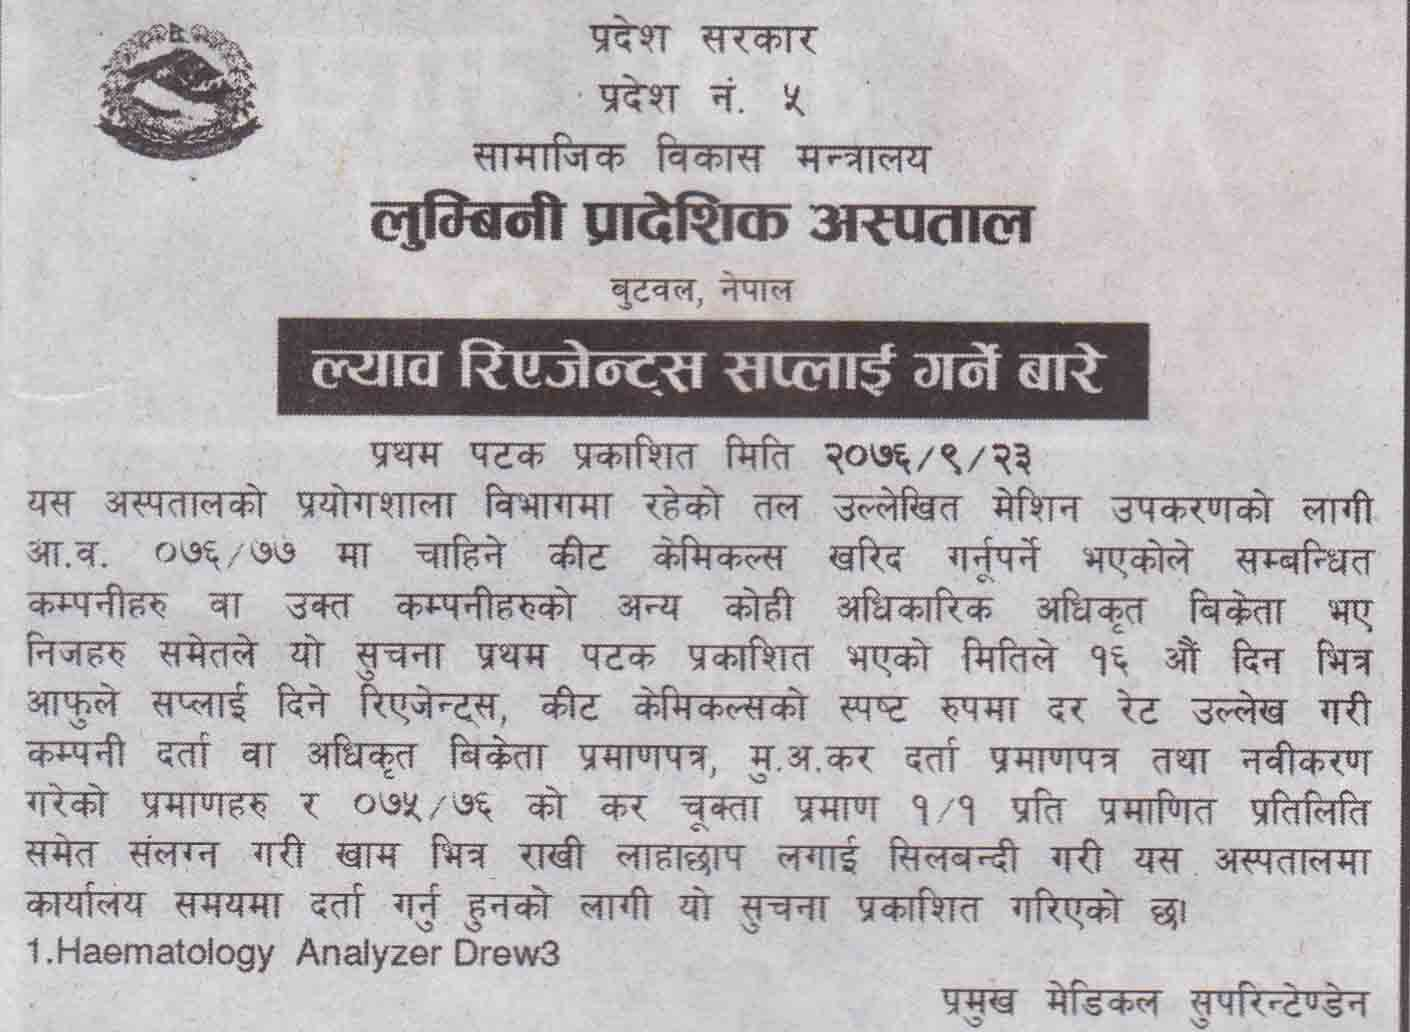 Notice for Lab Reagent Supply published on 2076/9/23